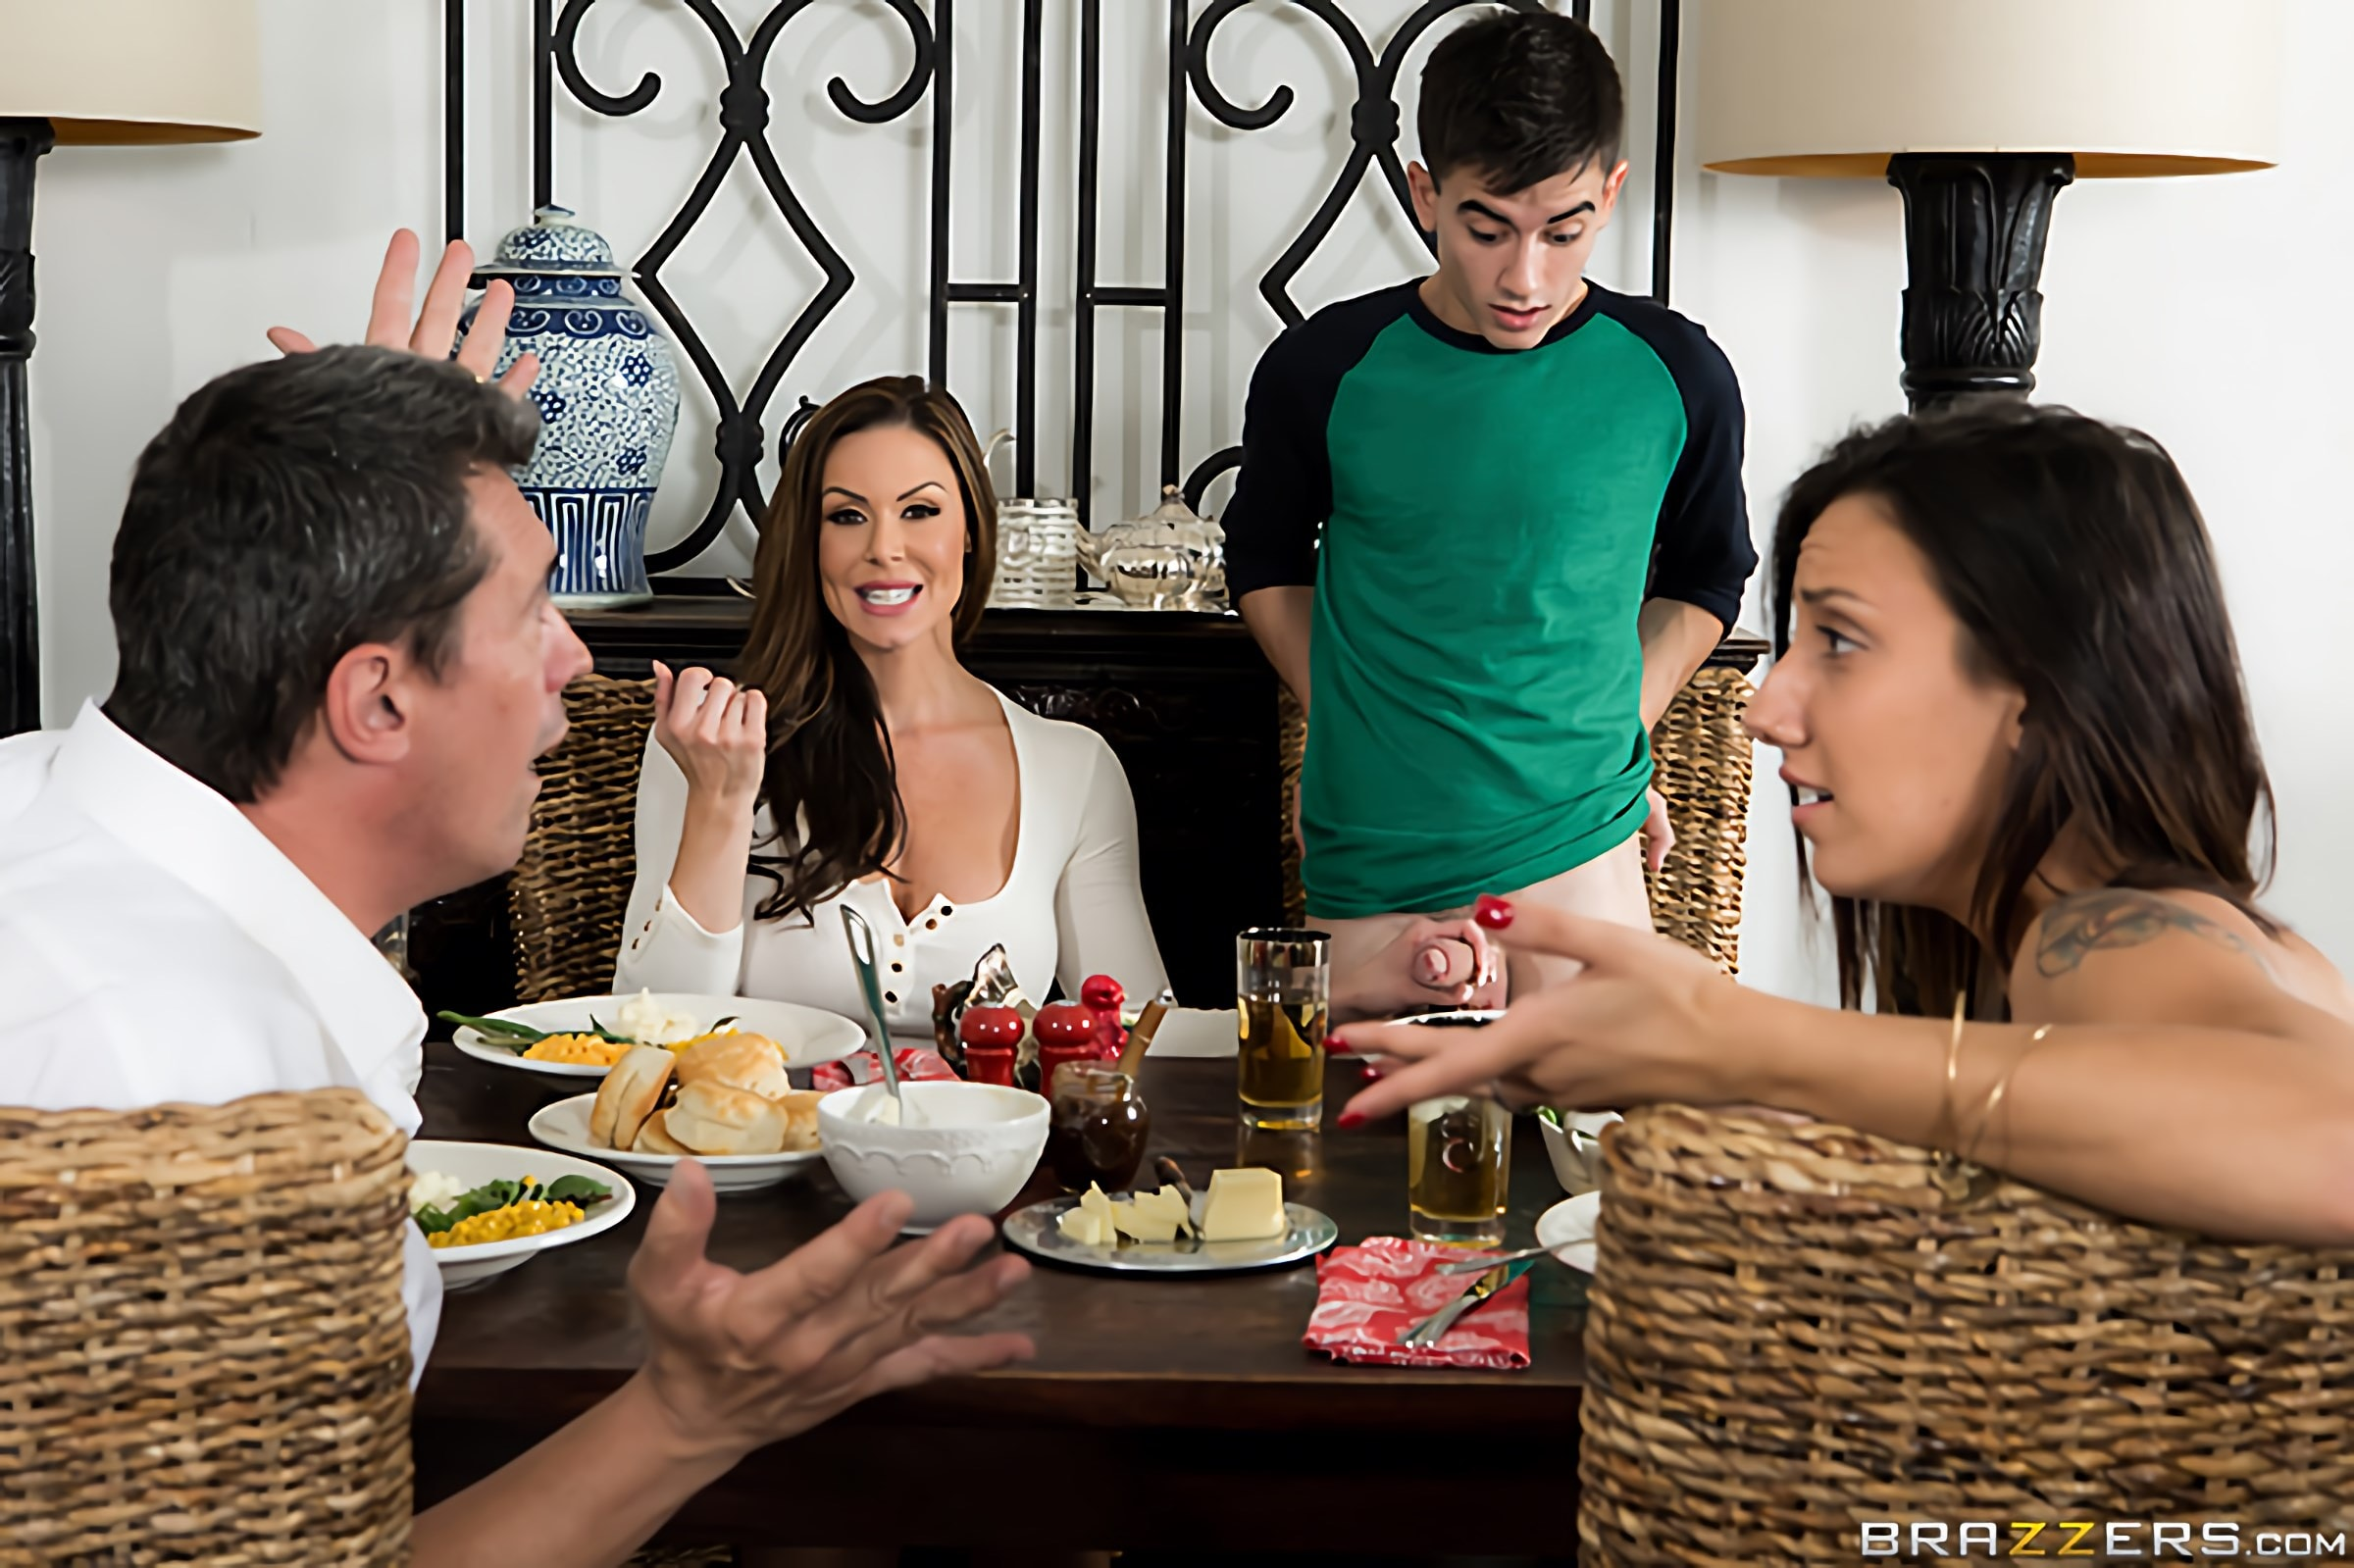 Brazzers 'Kendras Thanksgiving Stuffing' starring Kendra Lust (Photo 12)